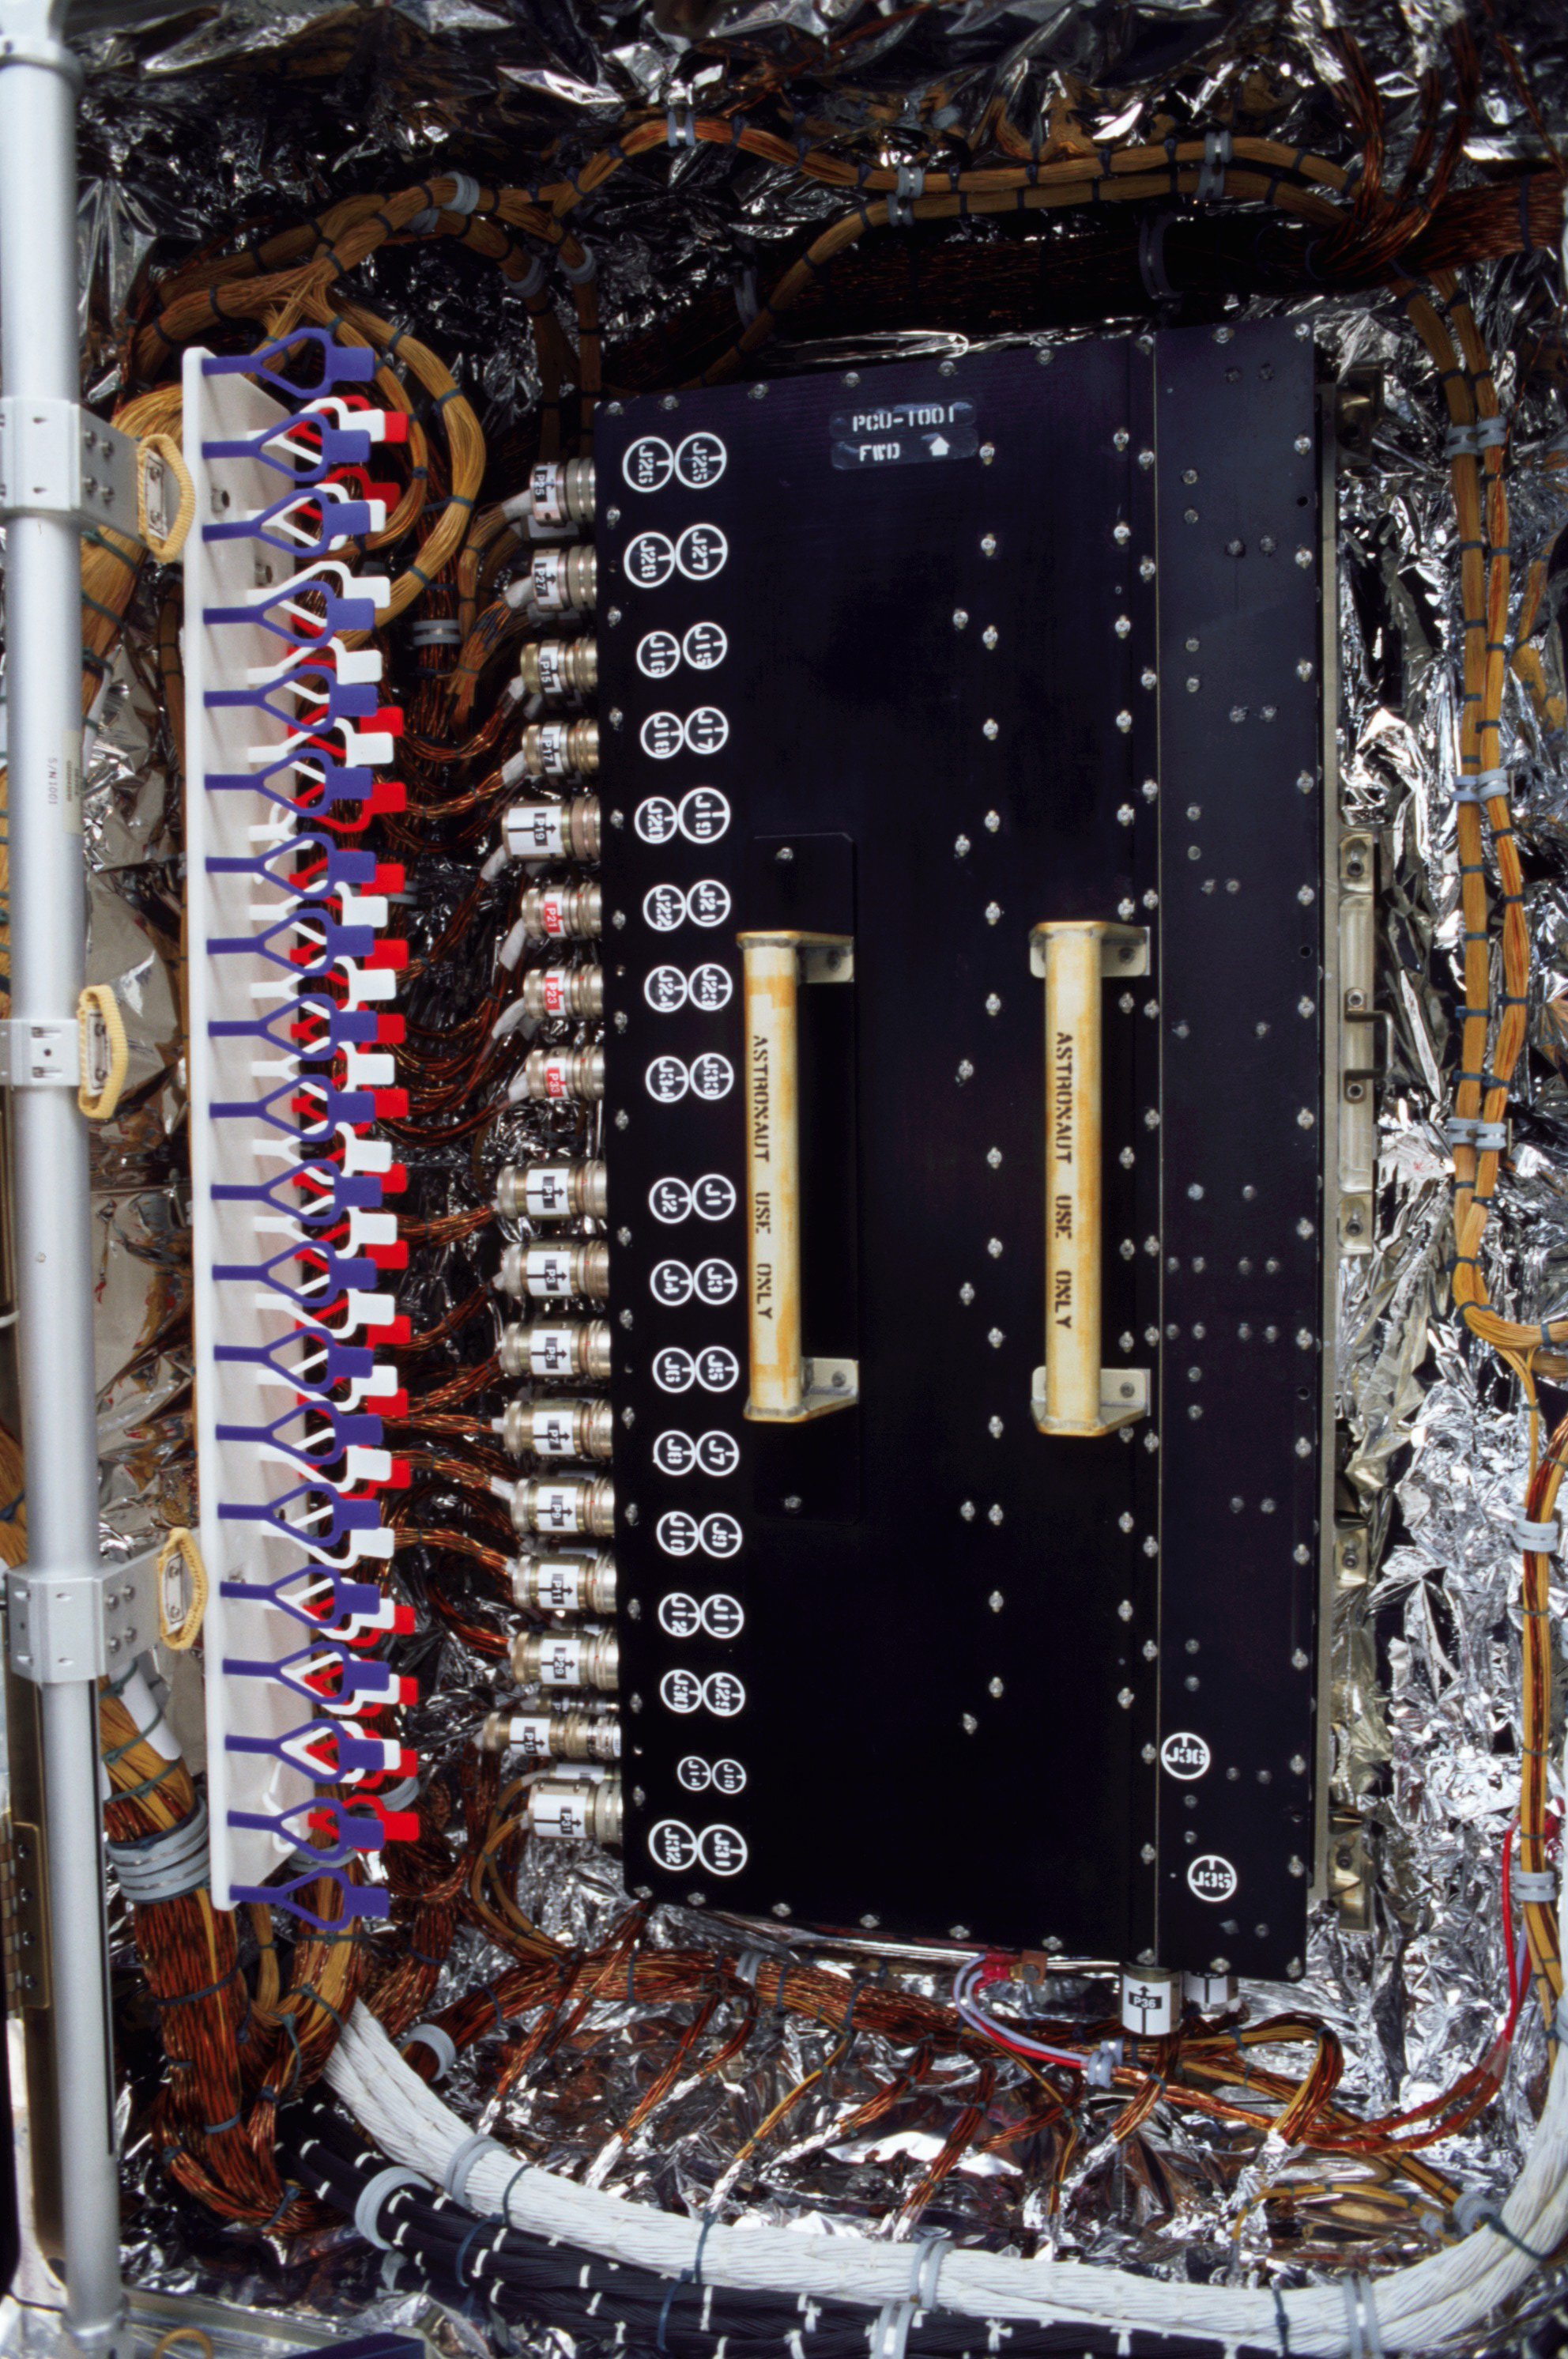 Hubble Space Telescope Electrical Power System Nasa On Pinterest Electric Circuit Safety And Science Control Unit